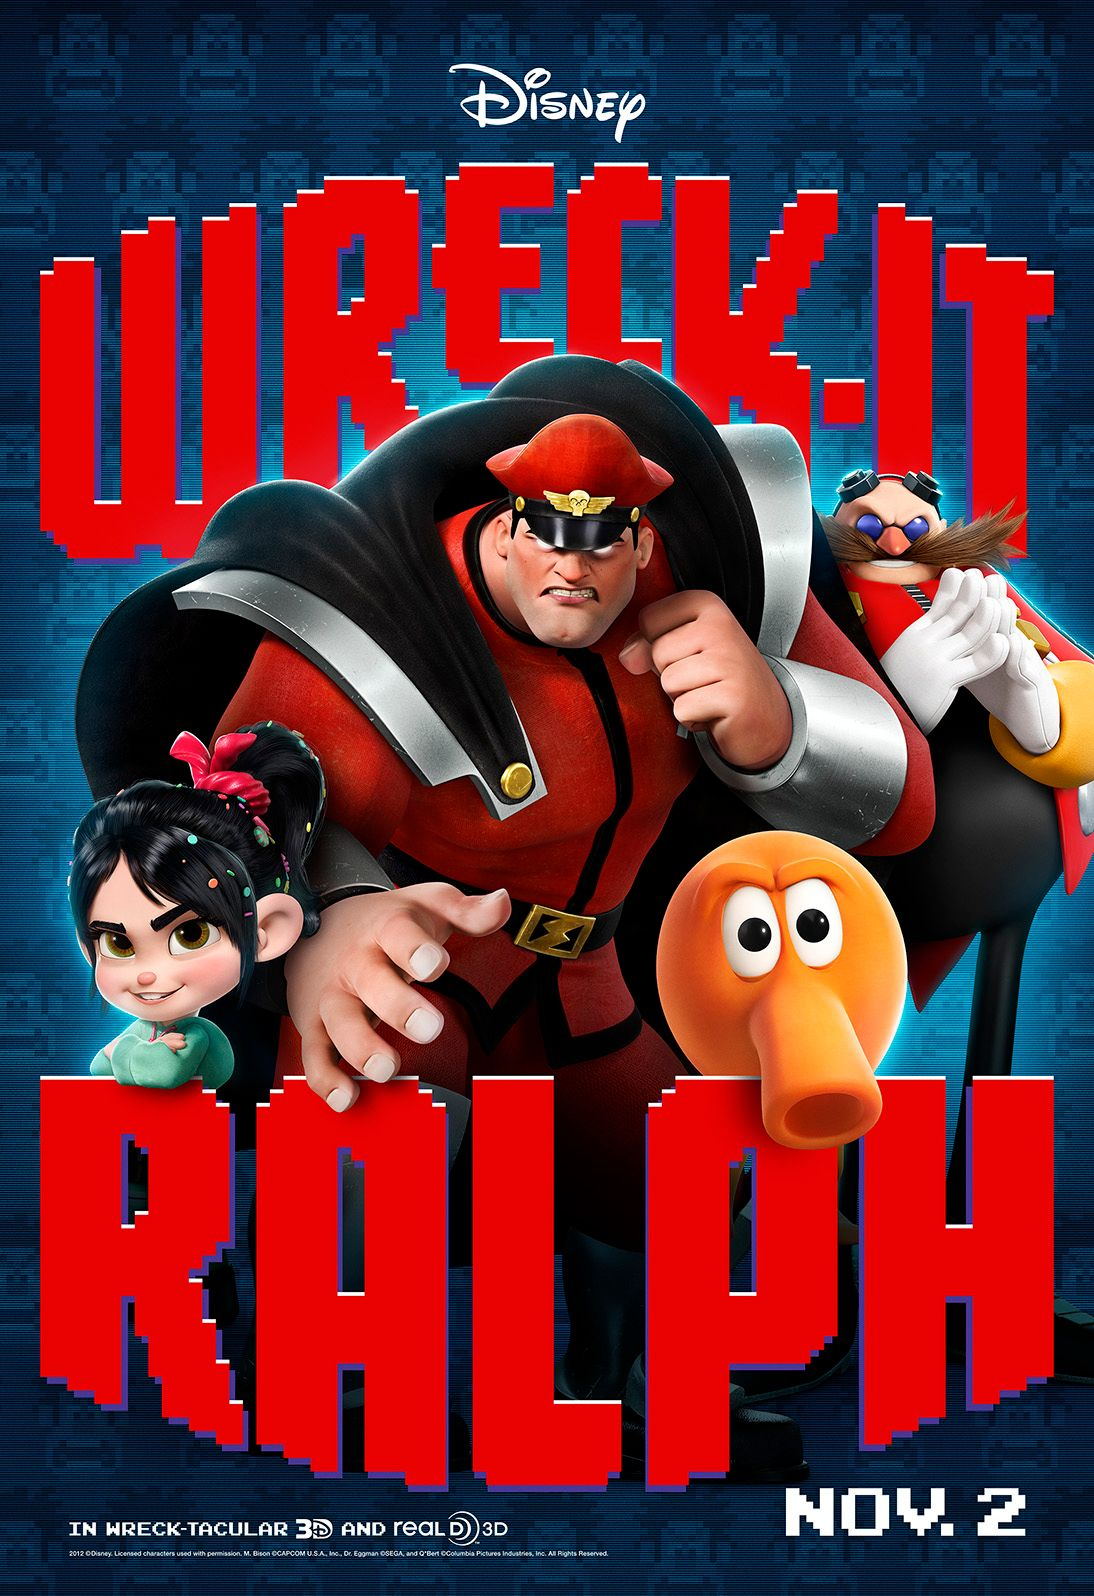 wreckitralph posters feature classic video game baddies